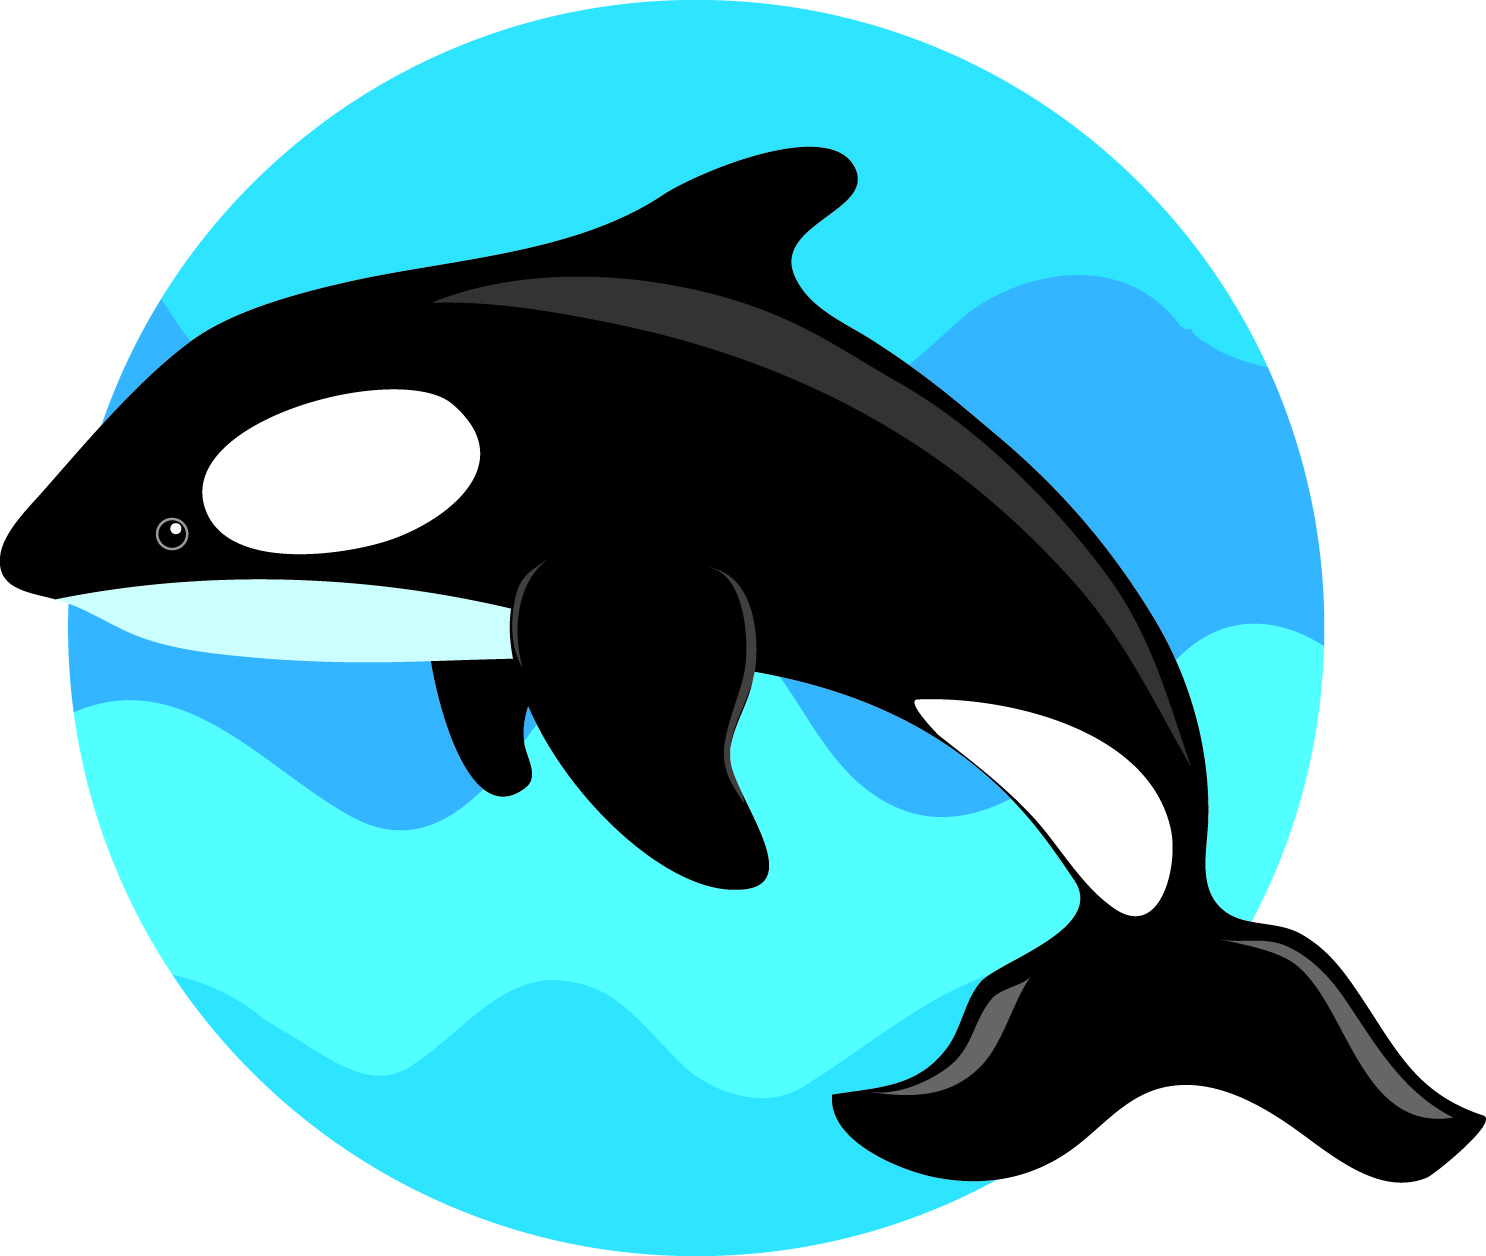 1486x1256 Whale Clipart Orca Free Collection Download And Share Whale